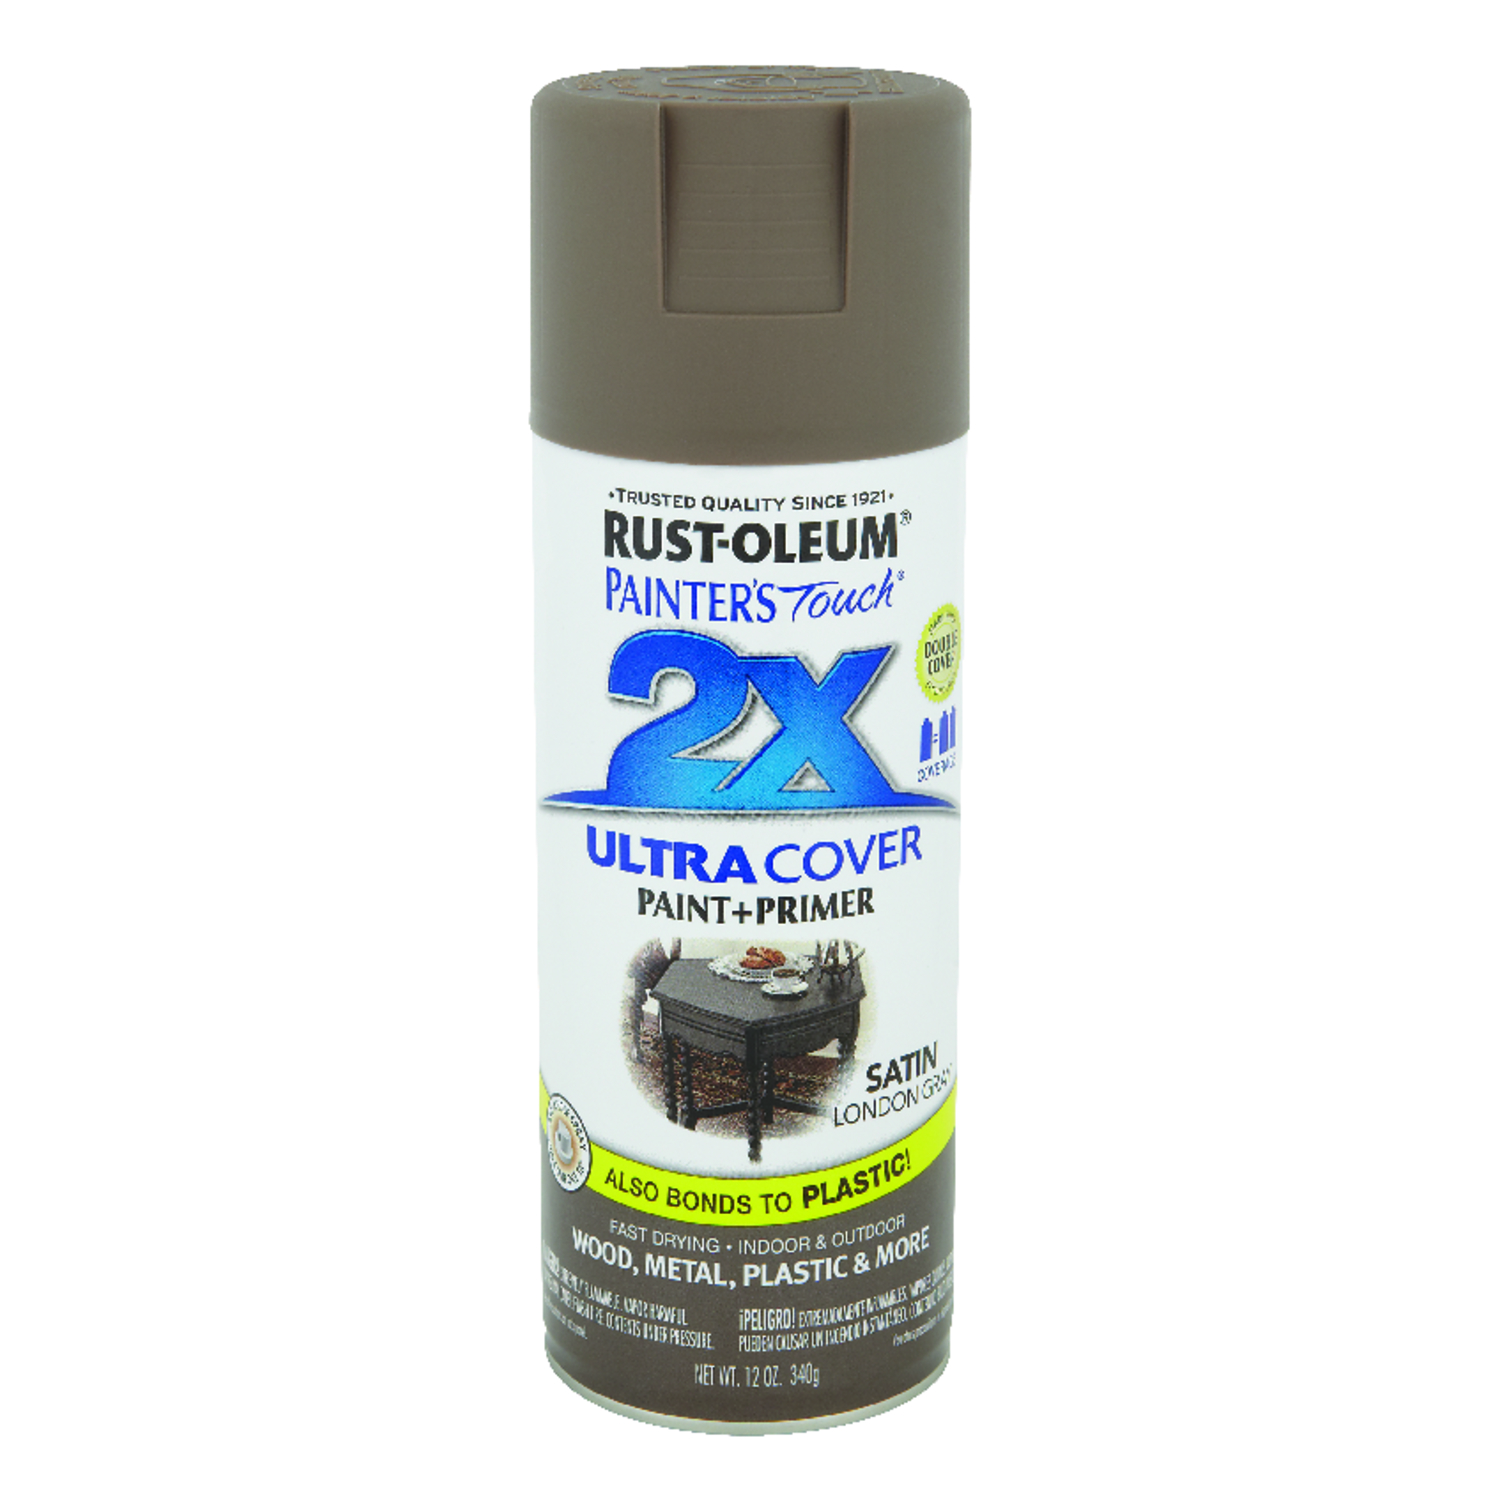 Rust-Oleum  Painter's Touch Ultra Cover  Satin  London Gray  12 oz. Spray Paint